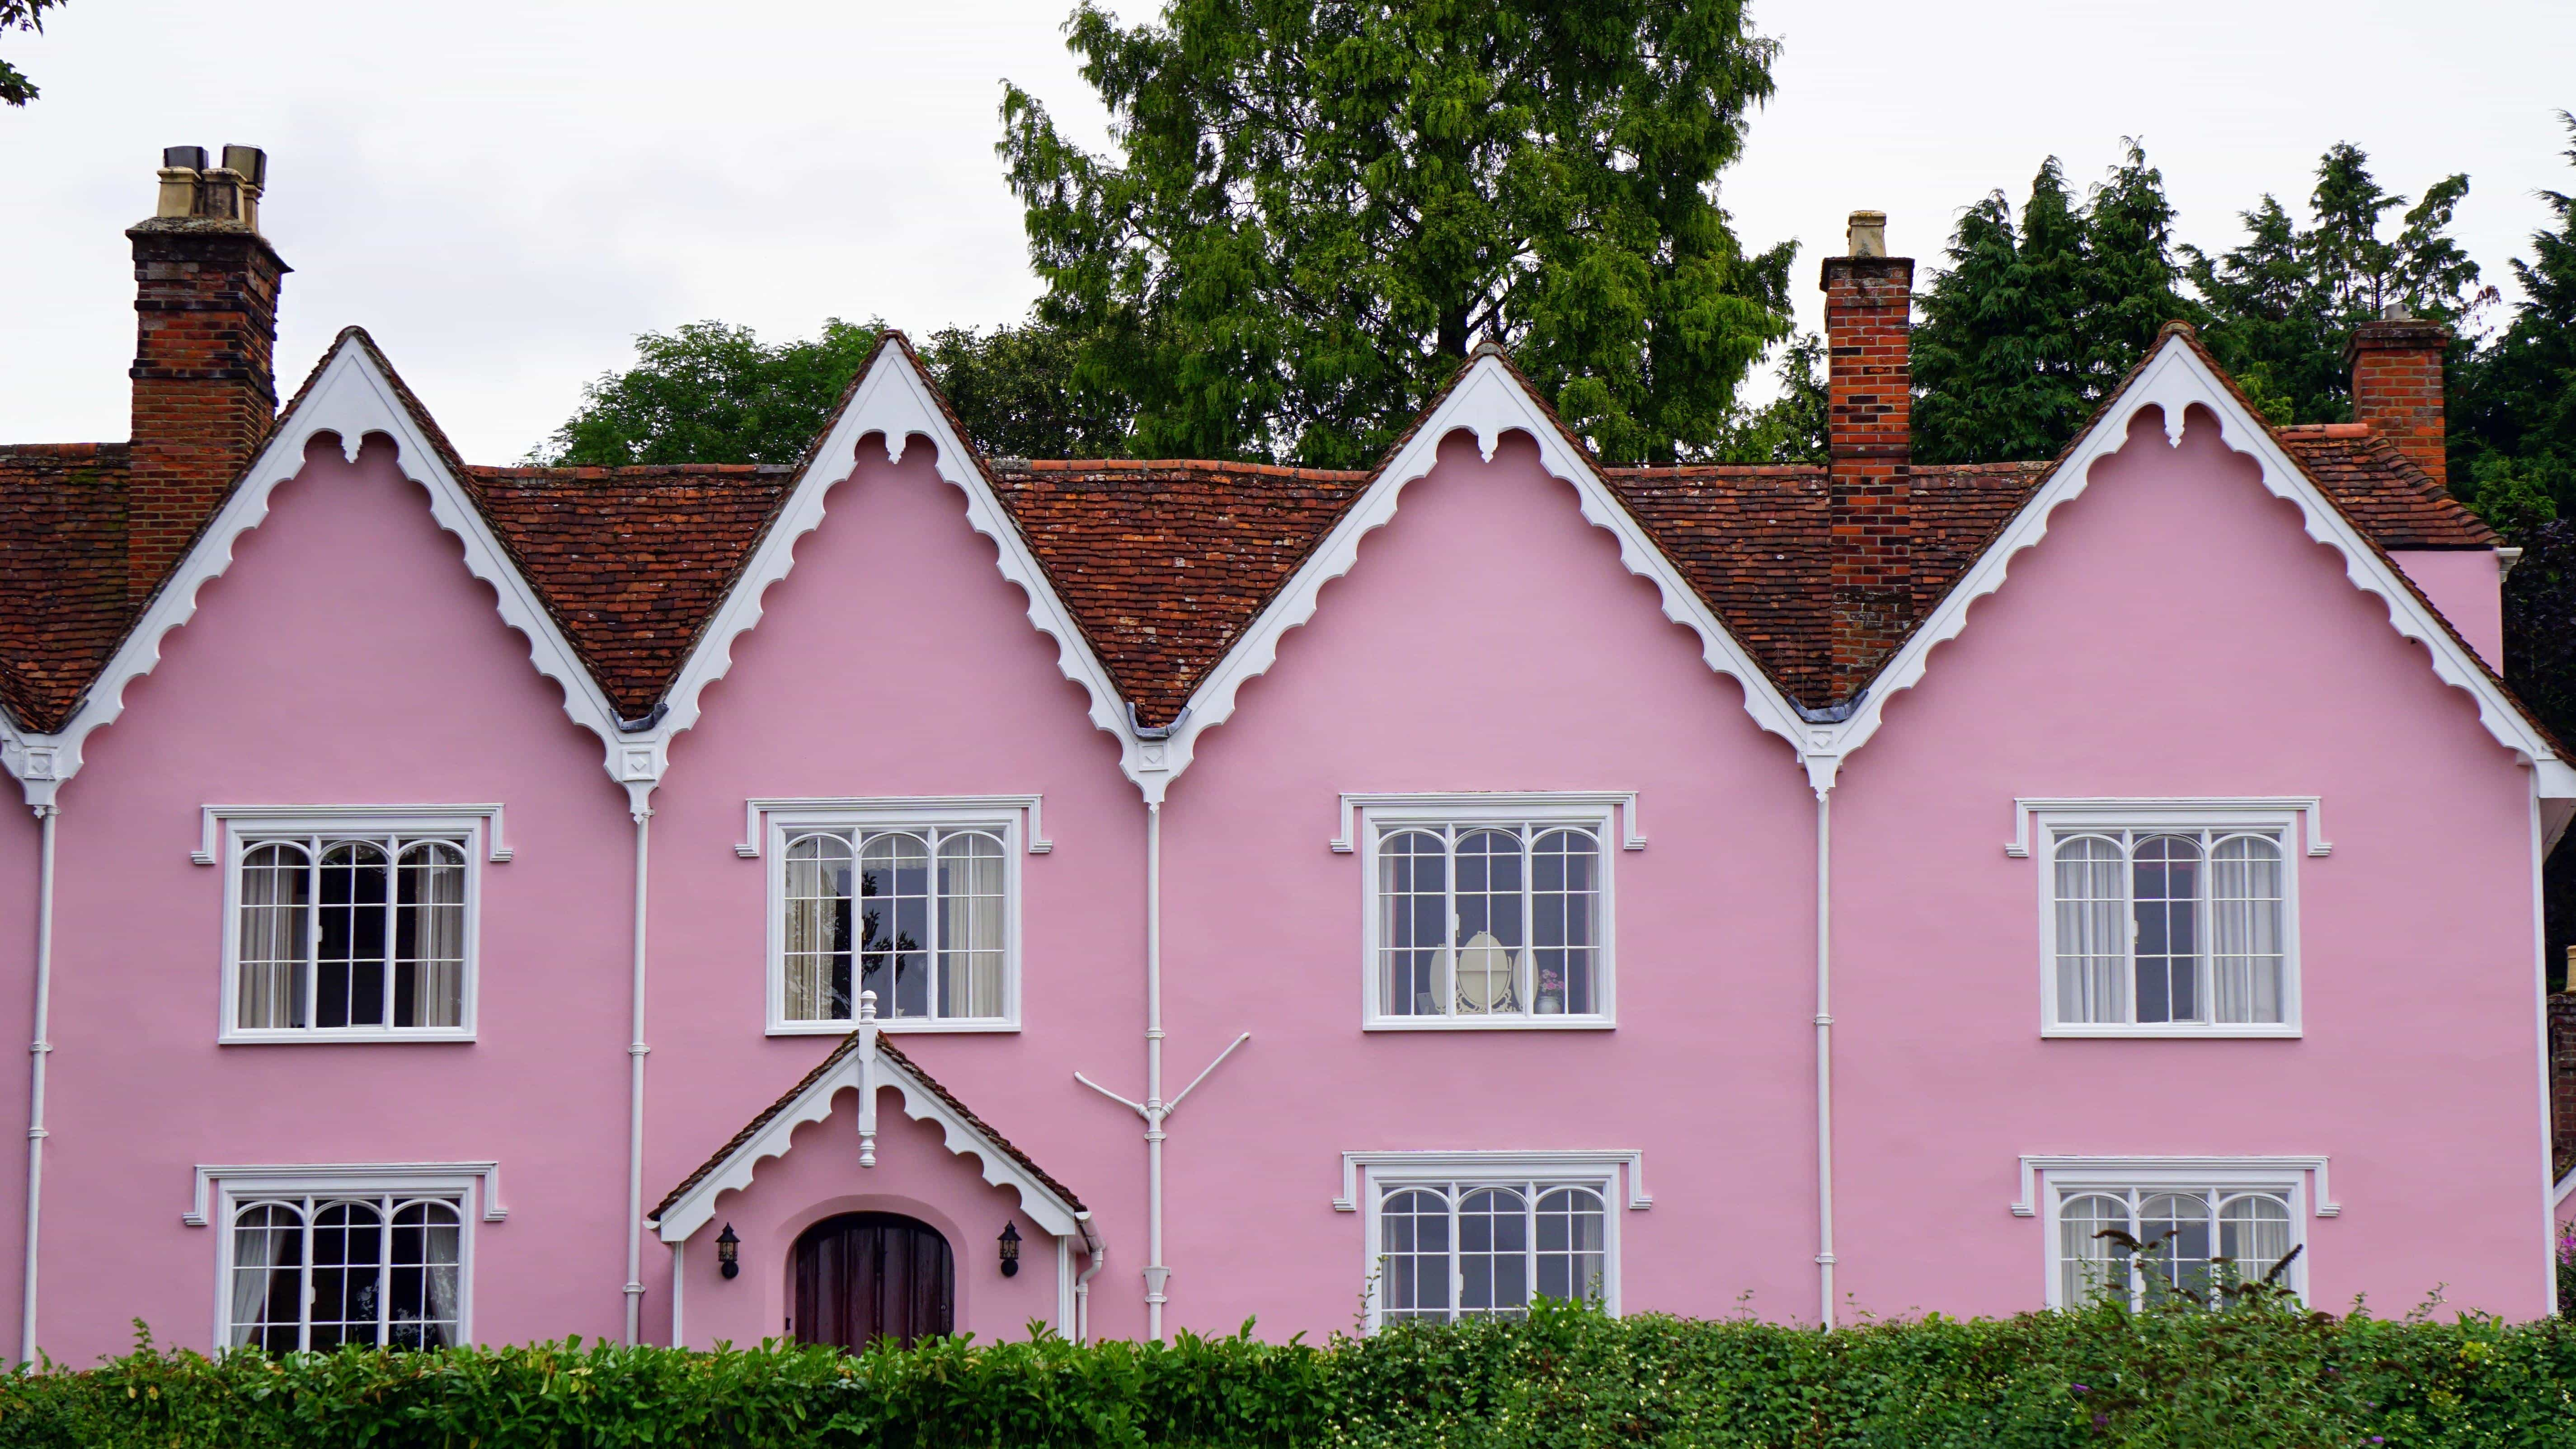 Free picture: house, pink, facade, roof, estate, architecture, home ...